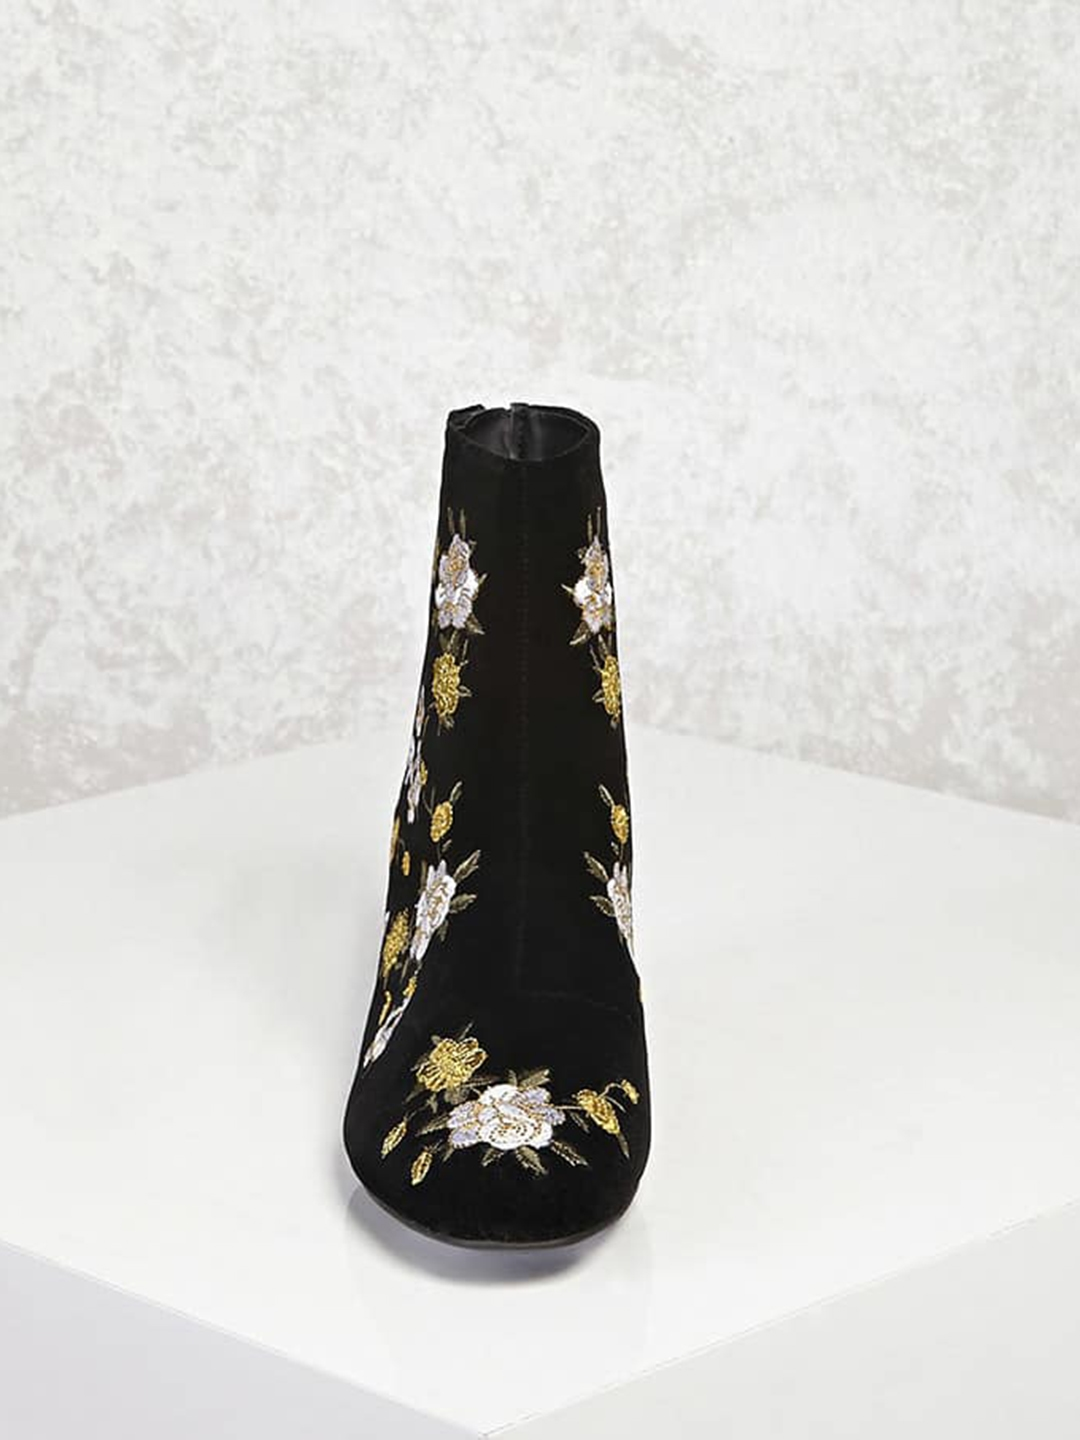 730db5276ca3 Buy FOREVER 21 Women Black   Yellow Embroidered Heeled Boots - Heels ...